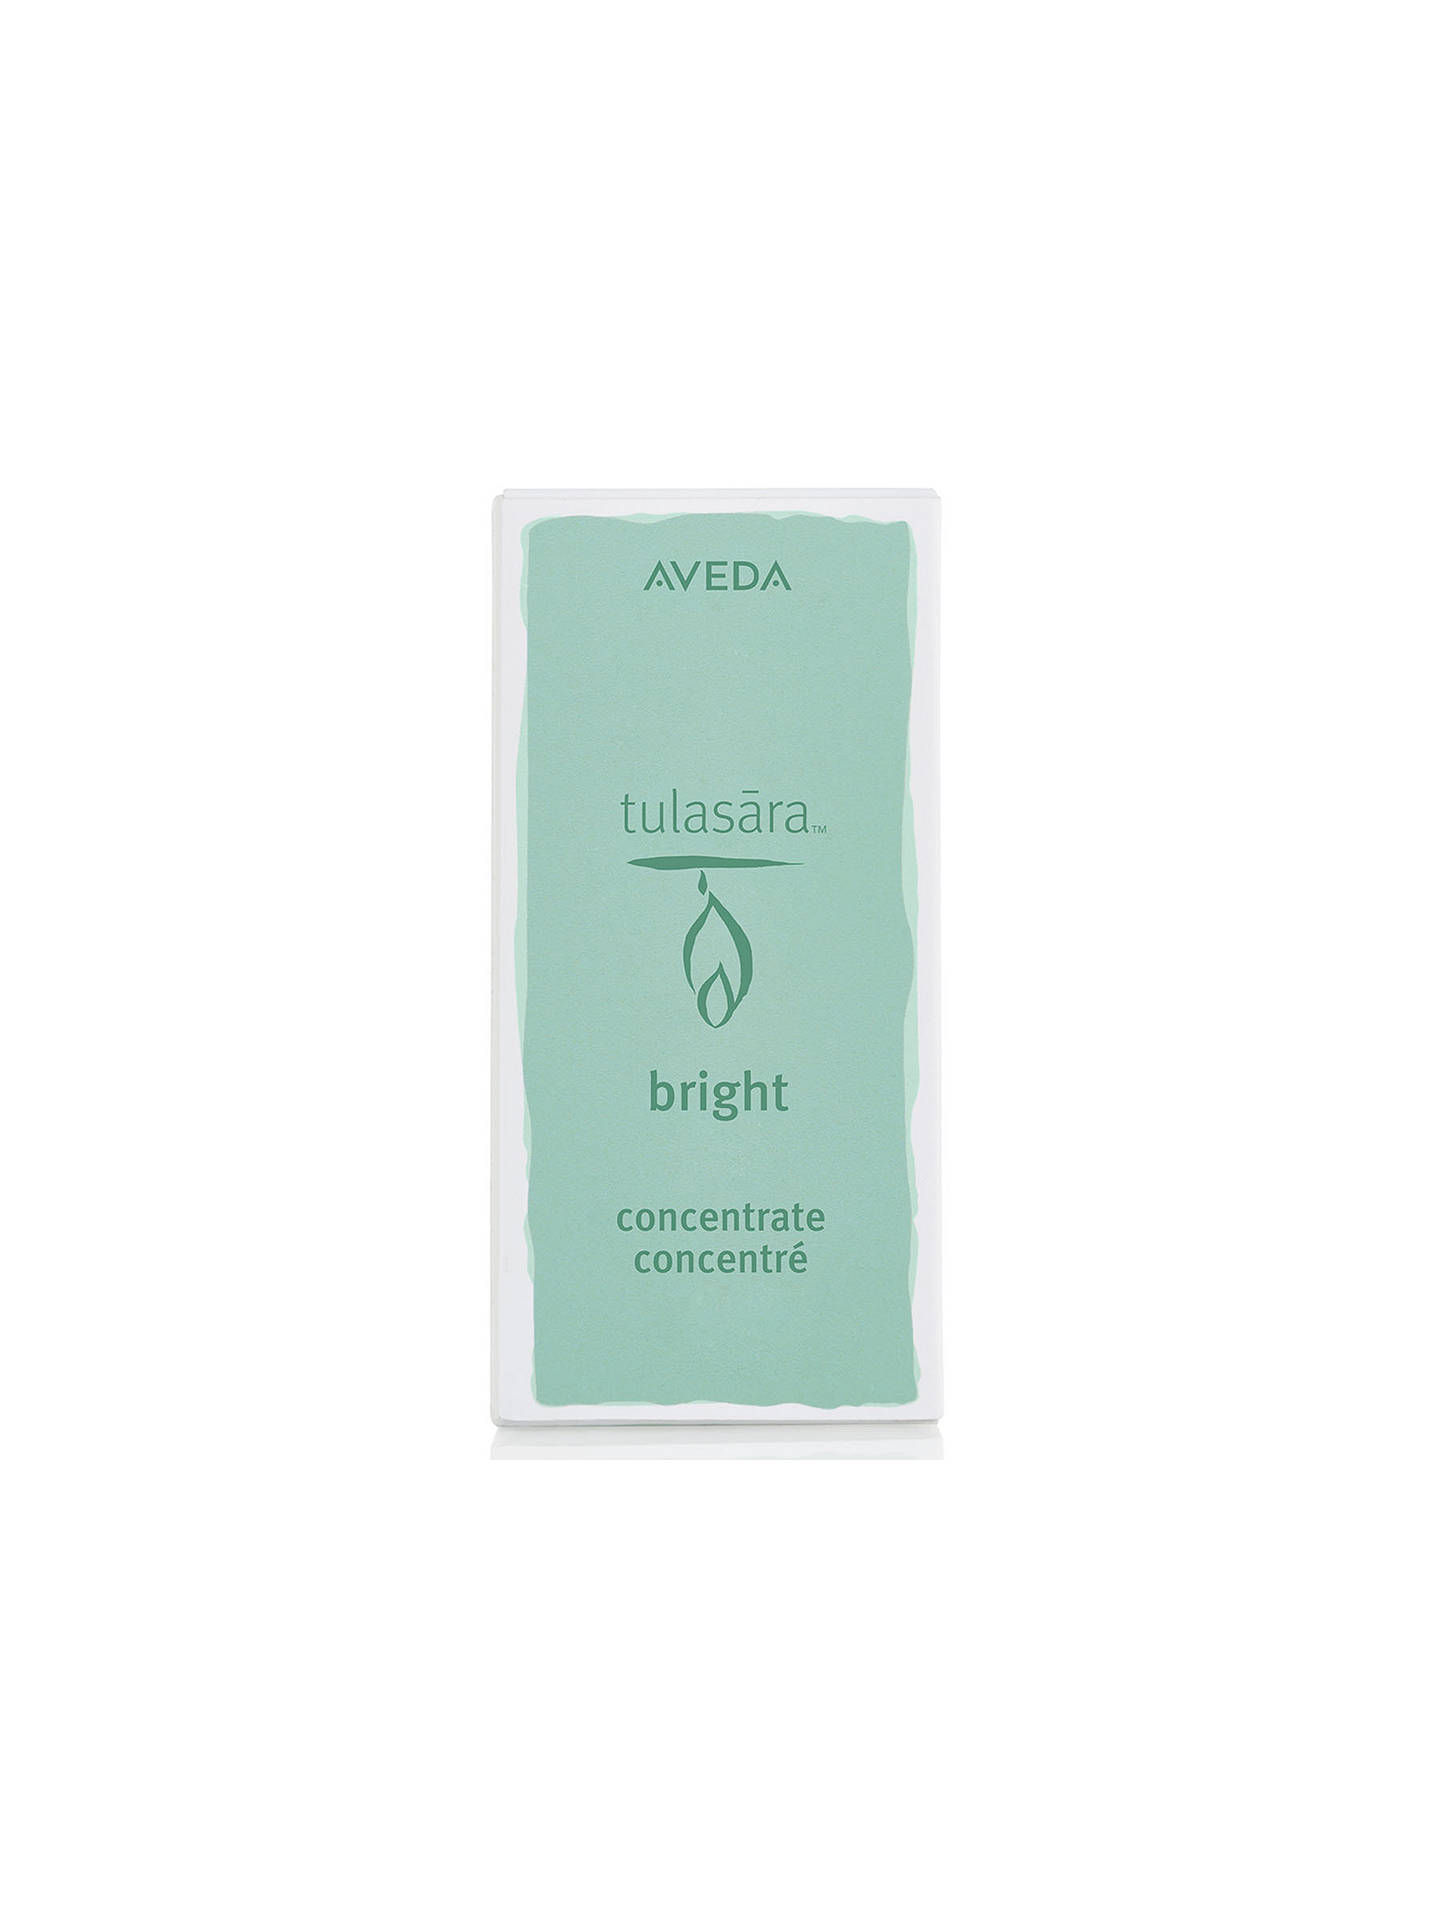 Buy Aveda Tulasara Bright Concentrate Facial Treatment, 30ml Online at johnlewis.com